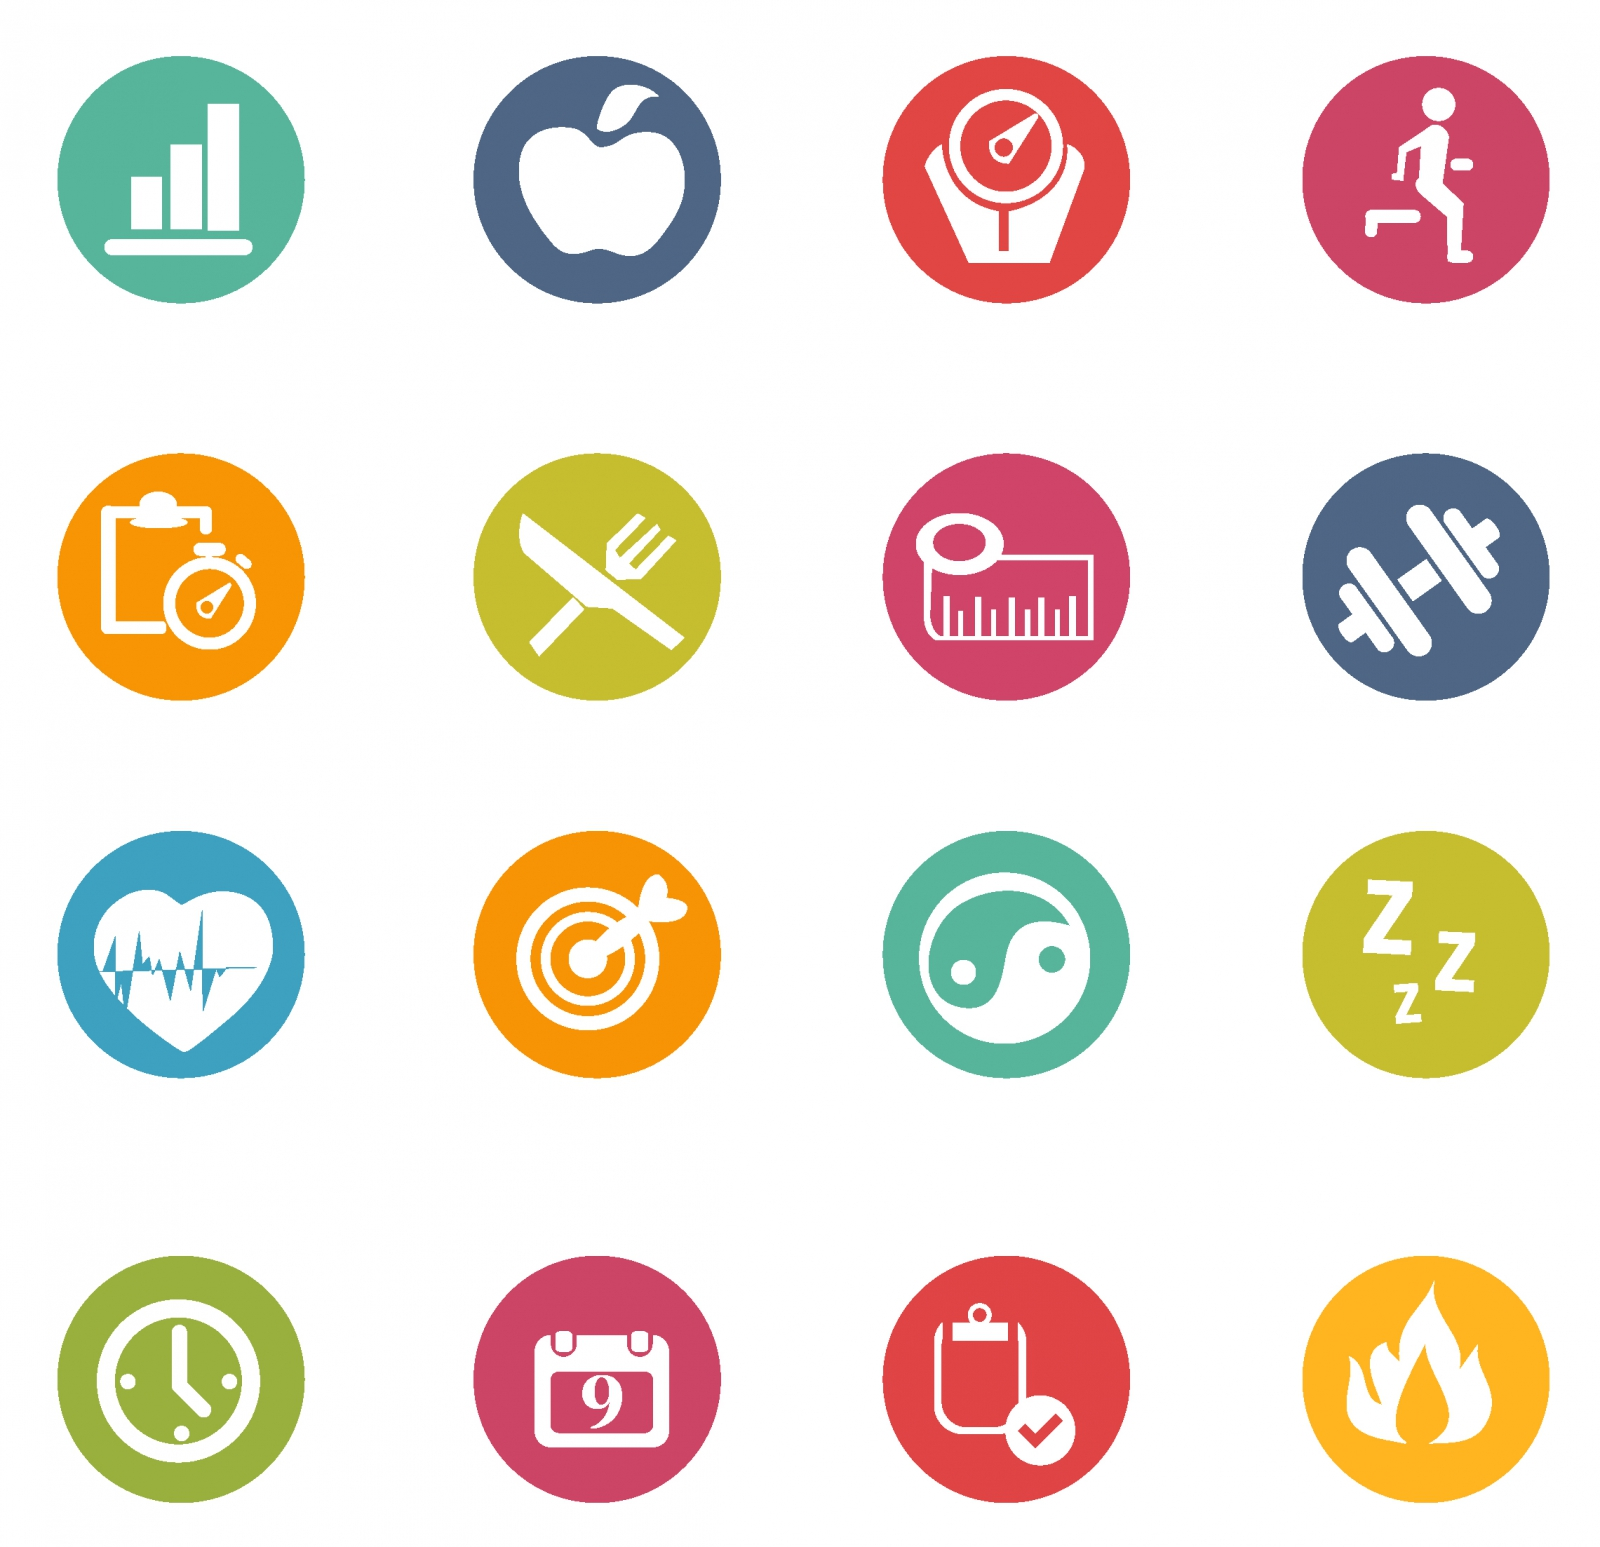 Free vector fitness icons 132989 Fitness Icons #292.